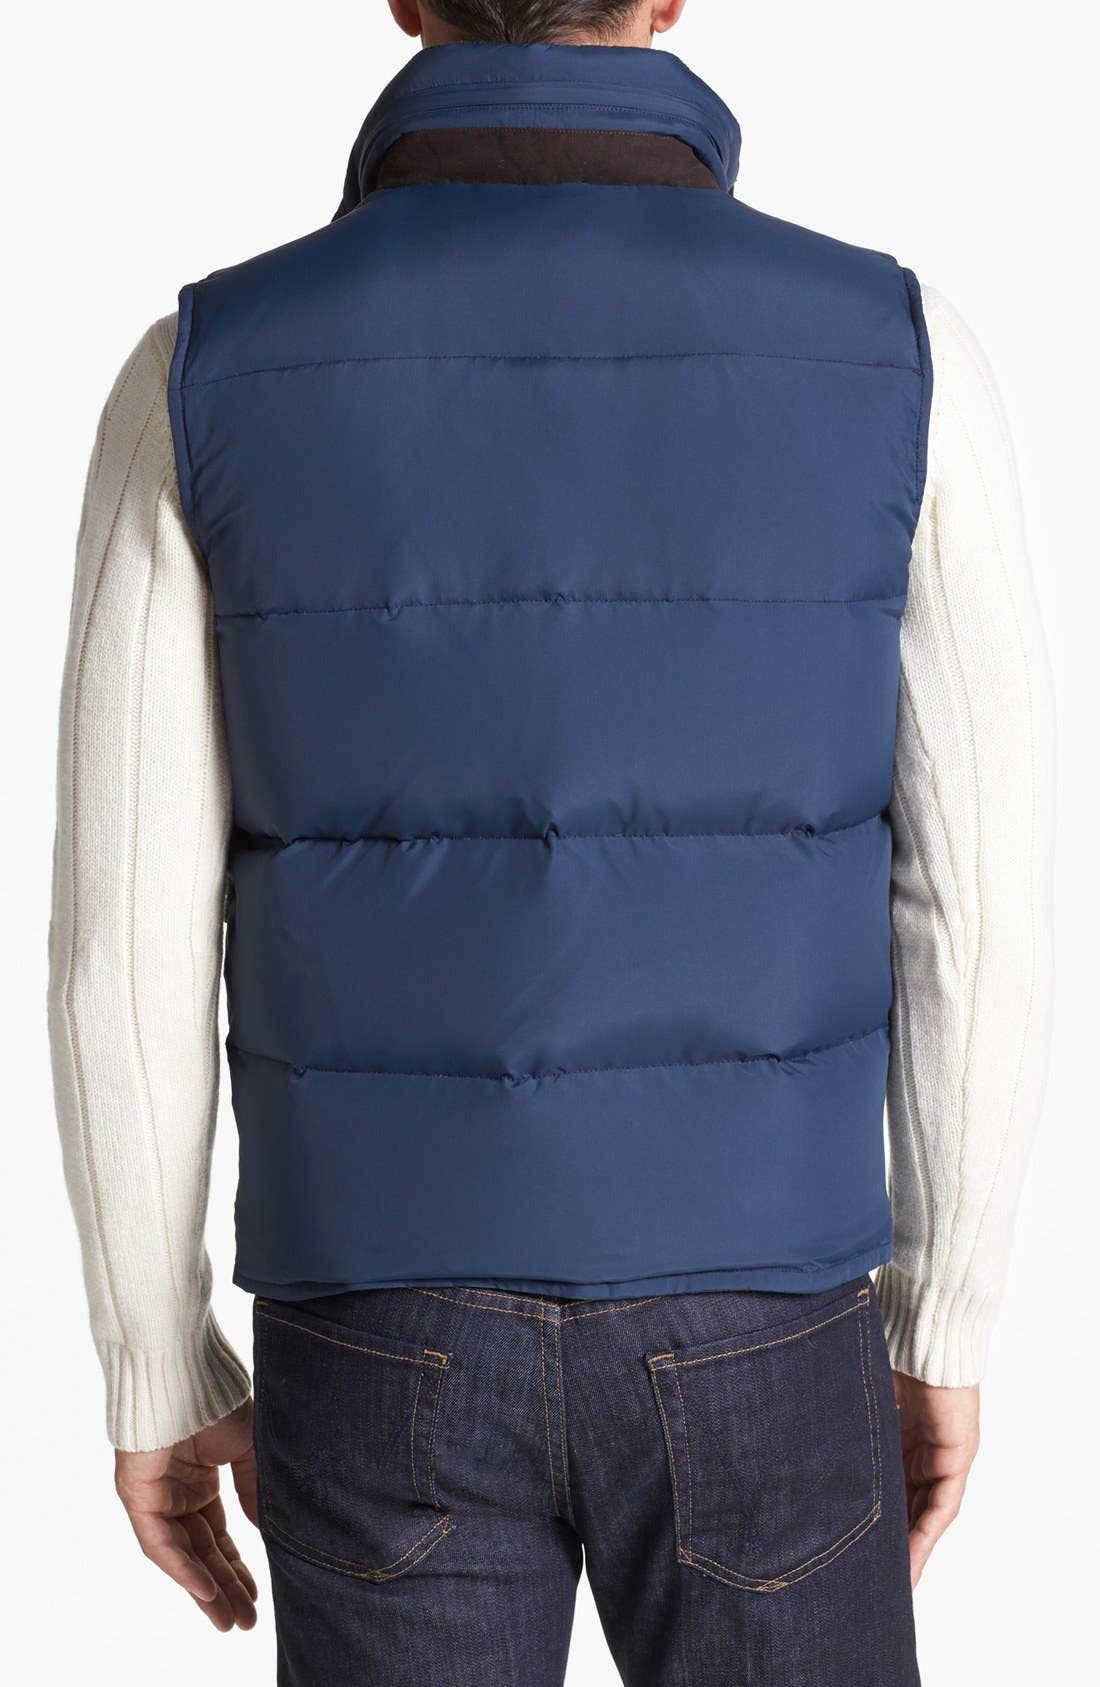 Relaxed Fit Vest,                             Alternate thumbnail 2, color,                             Navy